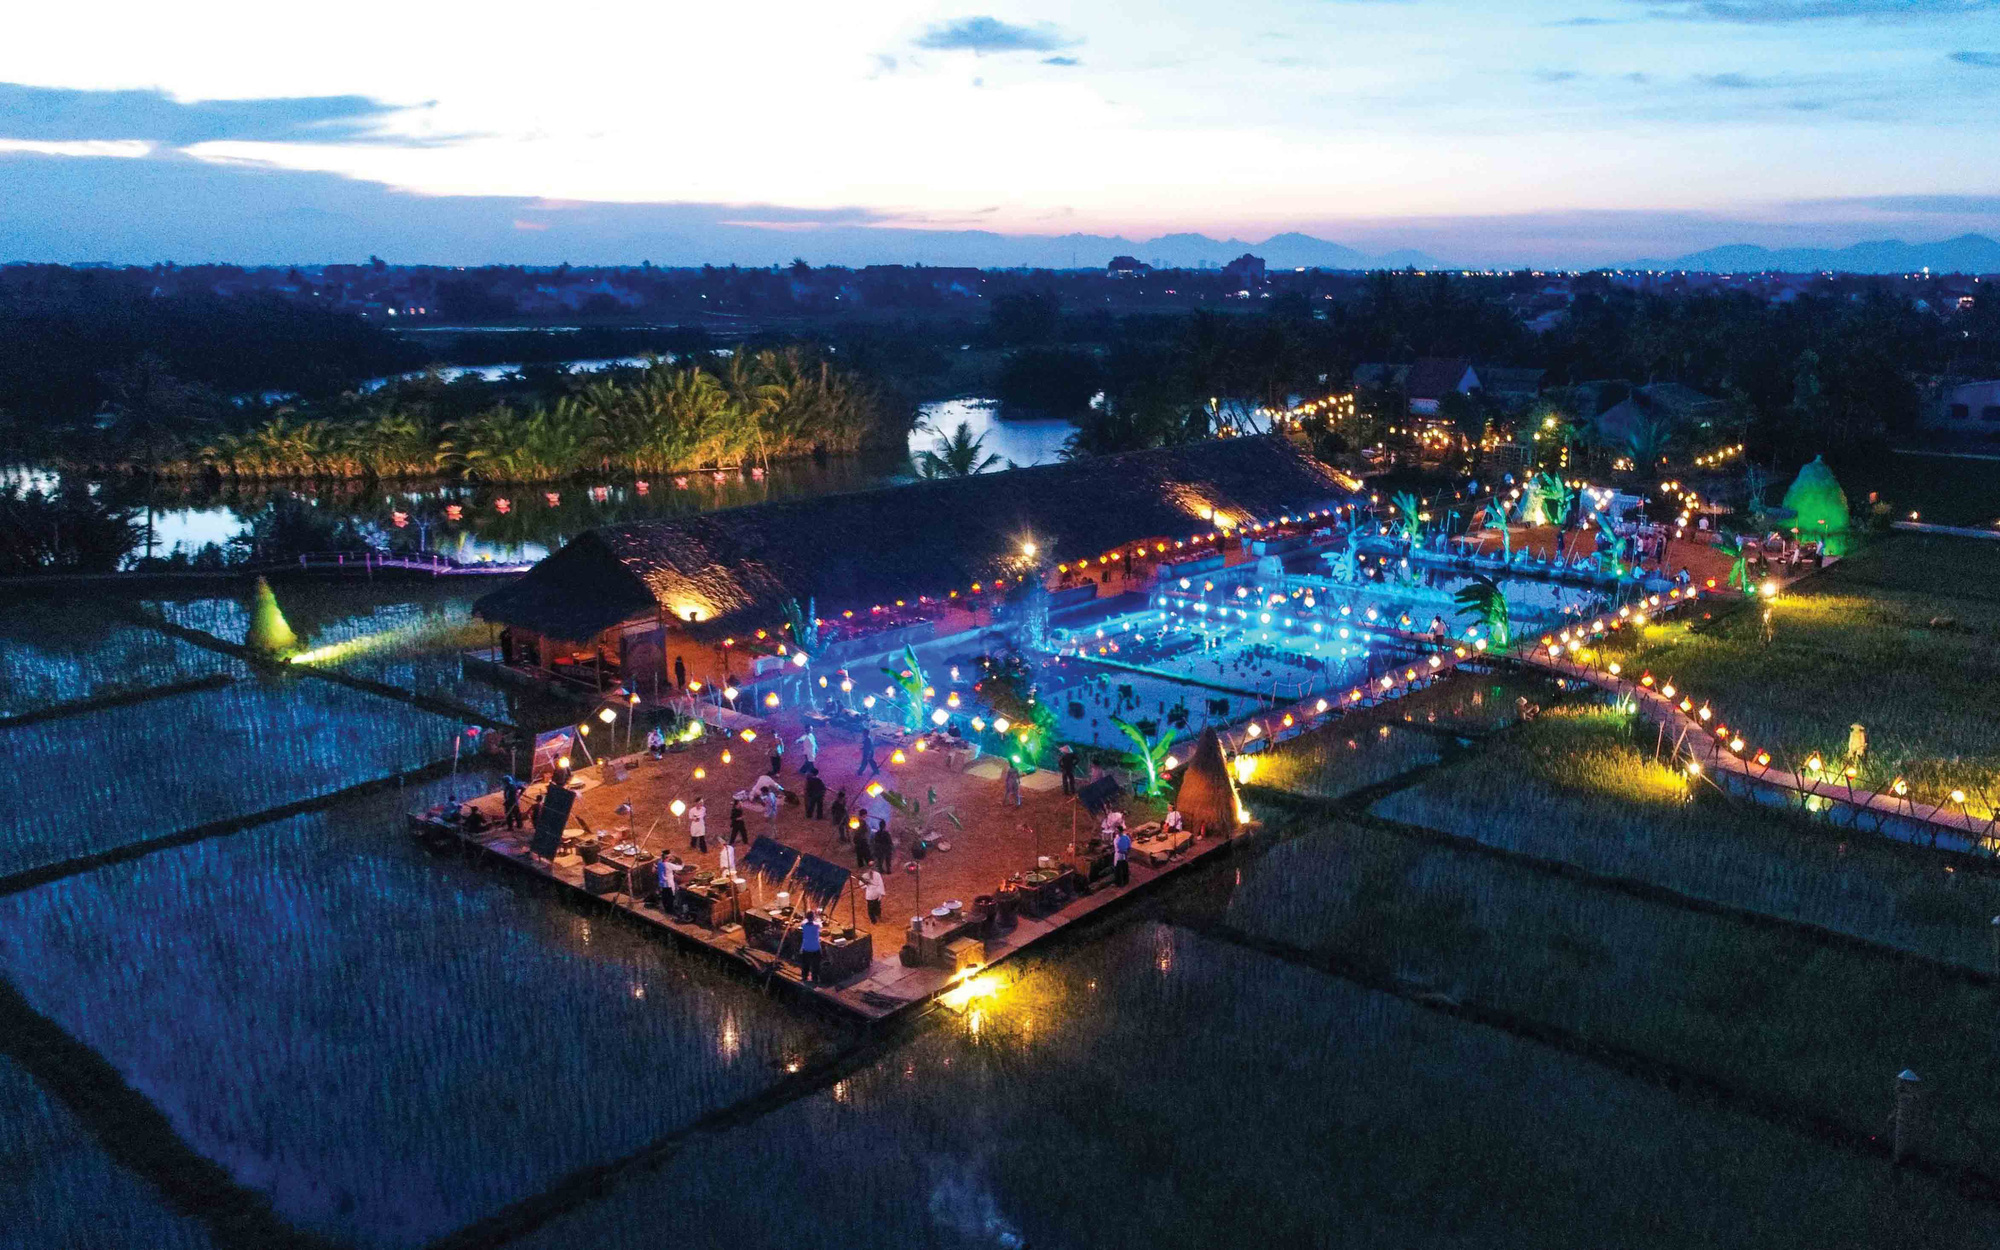 A bird eye's view at night of The Field Restaurant located in Cam Thanh Commune, Hoi An City, Quang Nam Province in central Vietnam. Photo: Thai Ba Dung / Tuoi Tre